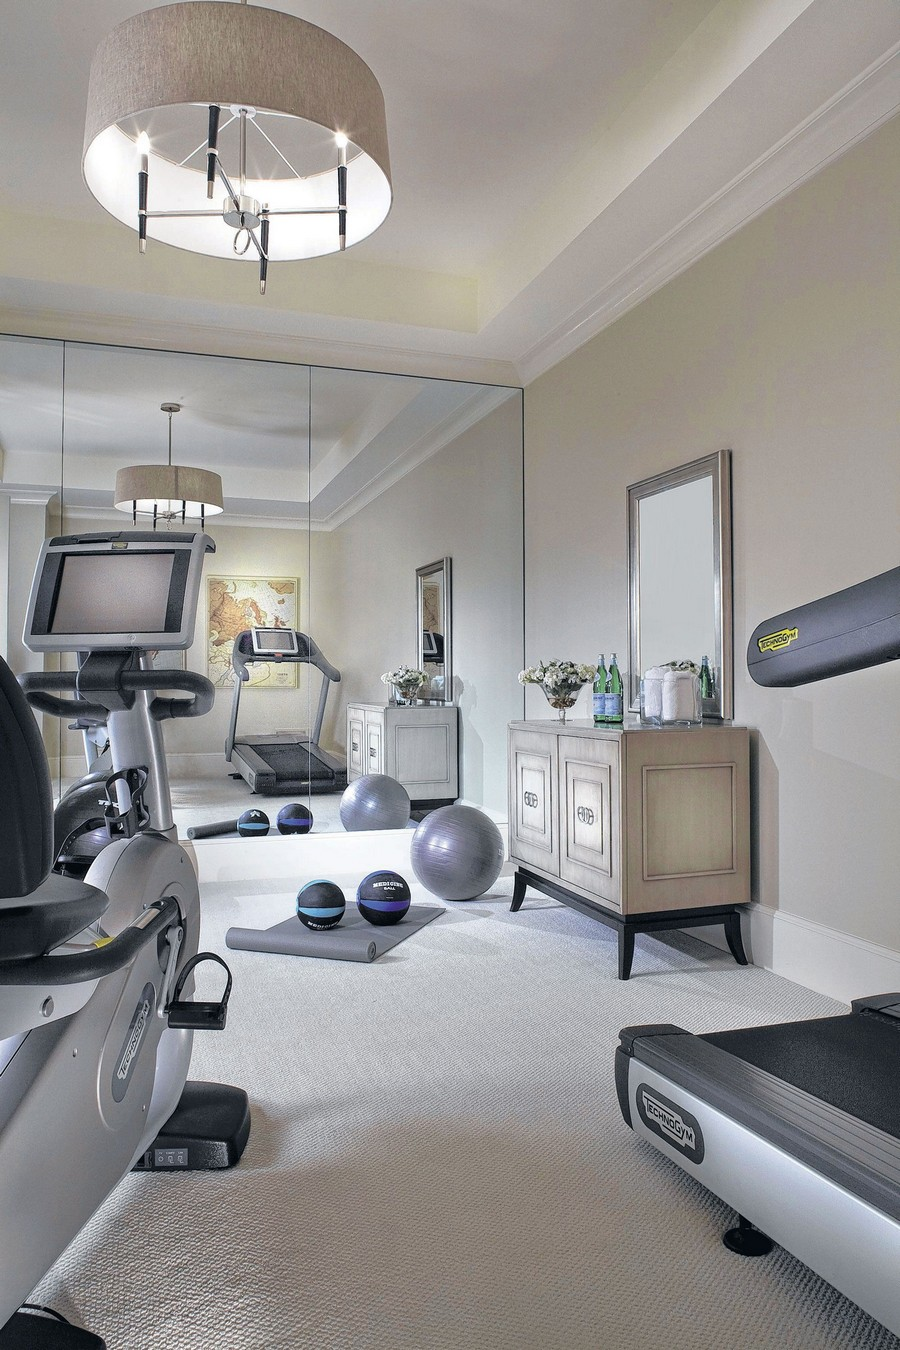 6-home-gym-interior-design-light-neutral-colors-windows-full-length-mirror-fitness-exercise-equipment-gray-beige-chest-of-drawers-mat-ball-racetrack